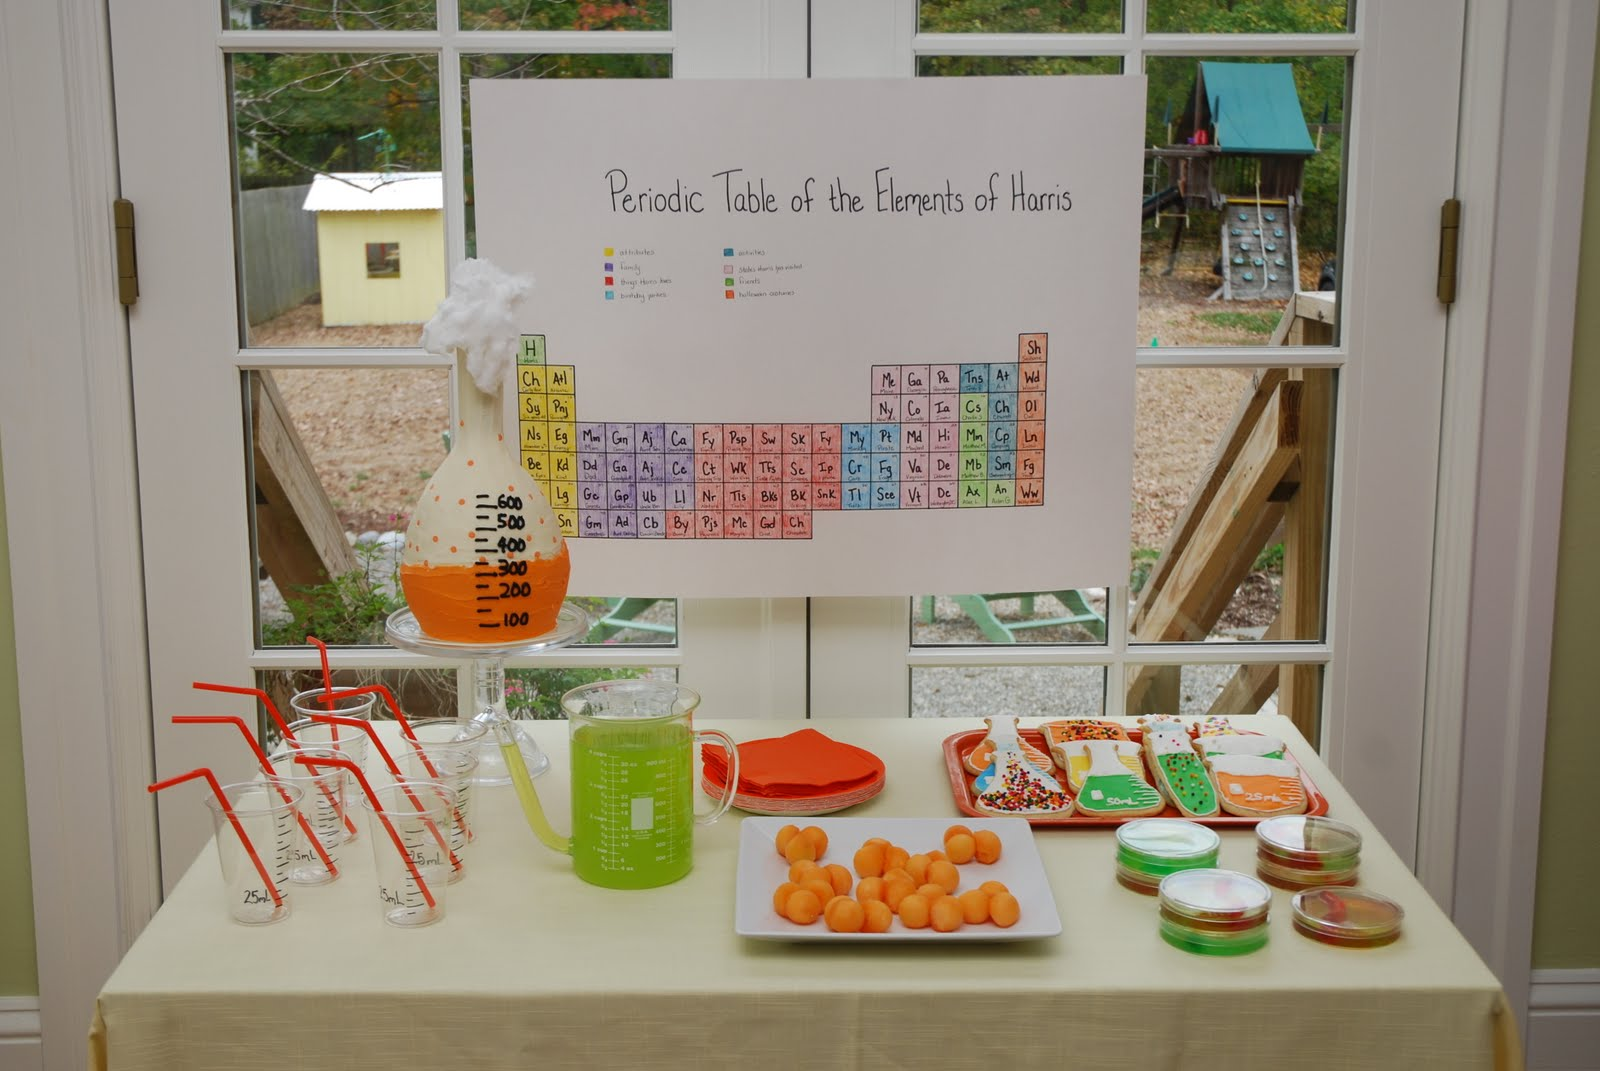 The princess and the frog blog science party part 1 is the cake and the food this year we kept it simple but fun harriss periodic table of the elements of harris was the perfect backdrop for the food gamestrikefo Choice Image